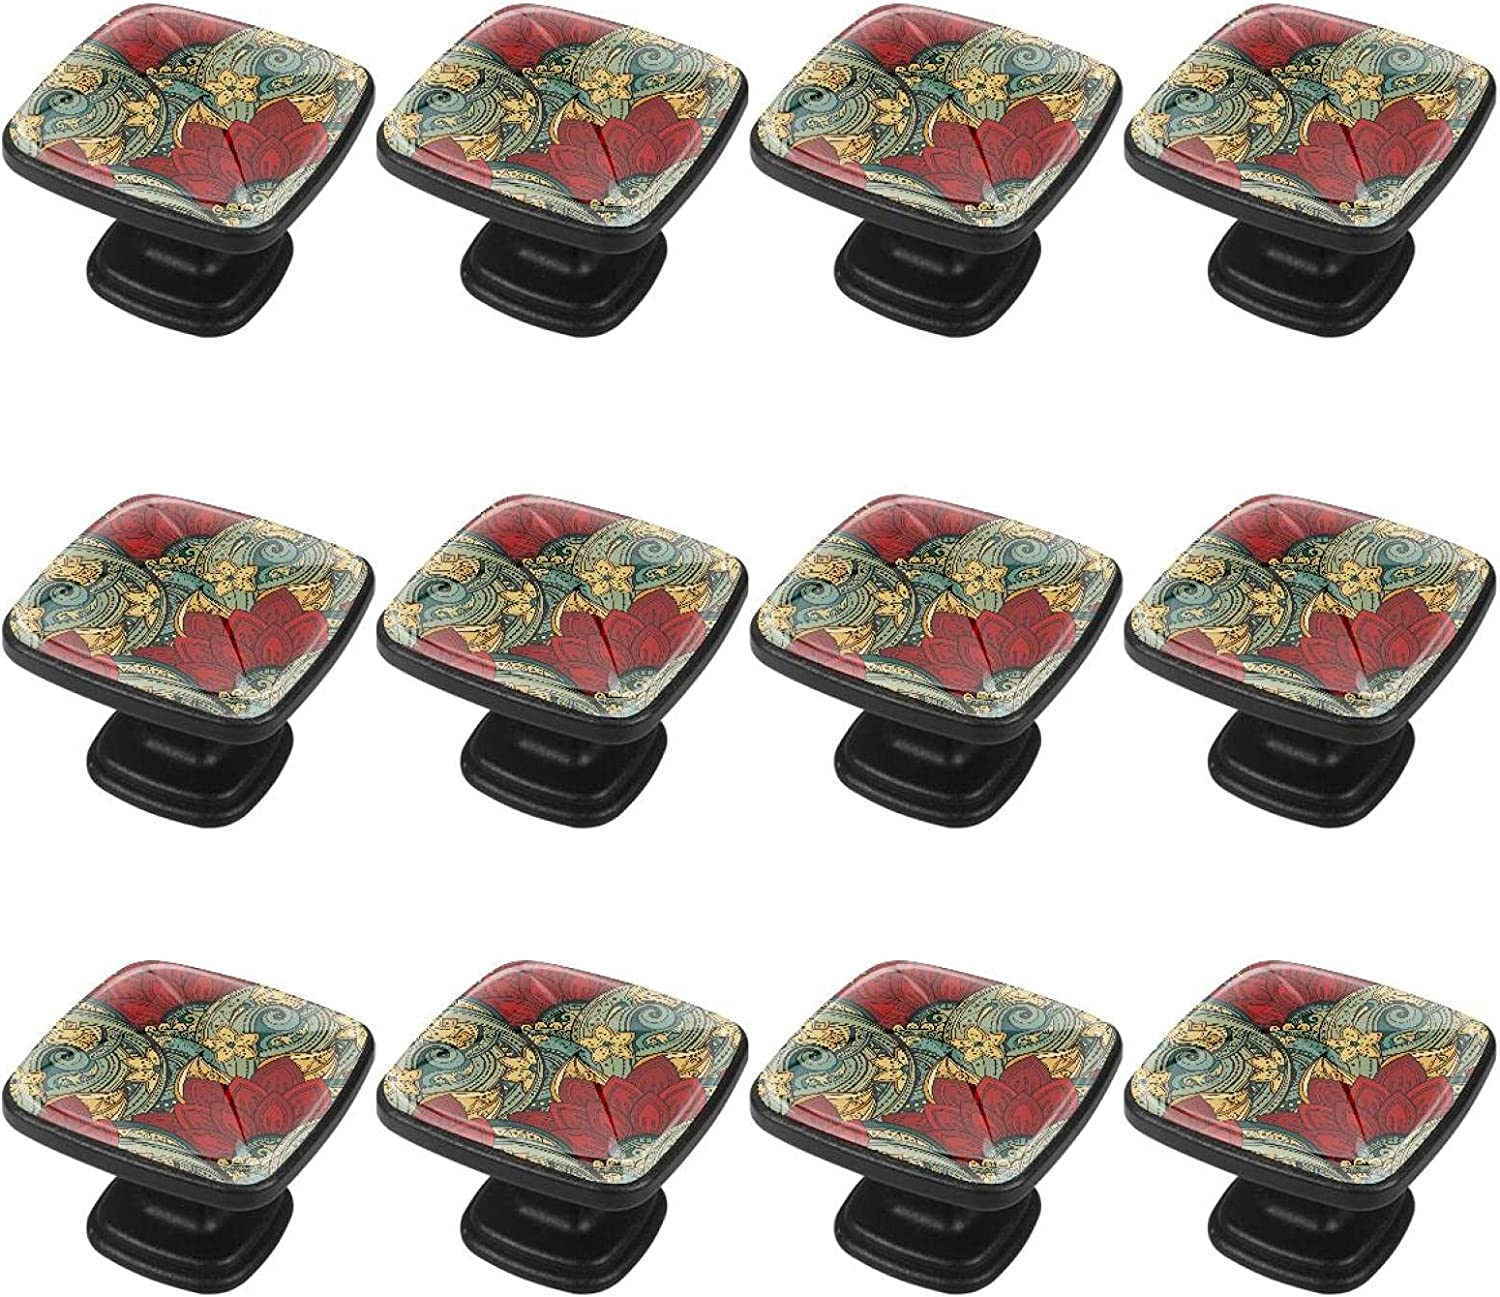 Kitchen Mail order cheap Bombing free shipping Cabinet Knobs Crystal Glass Dres Handles Pulls for